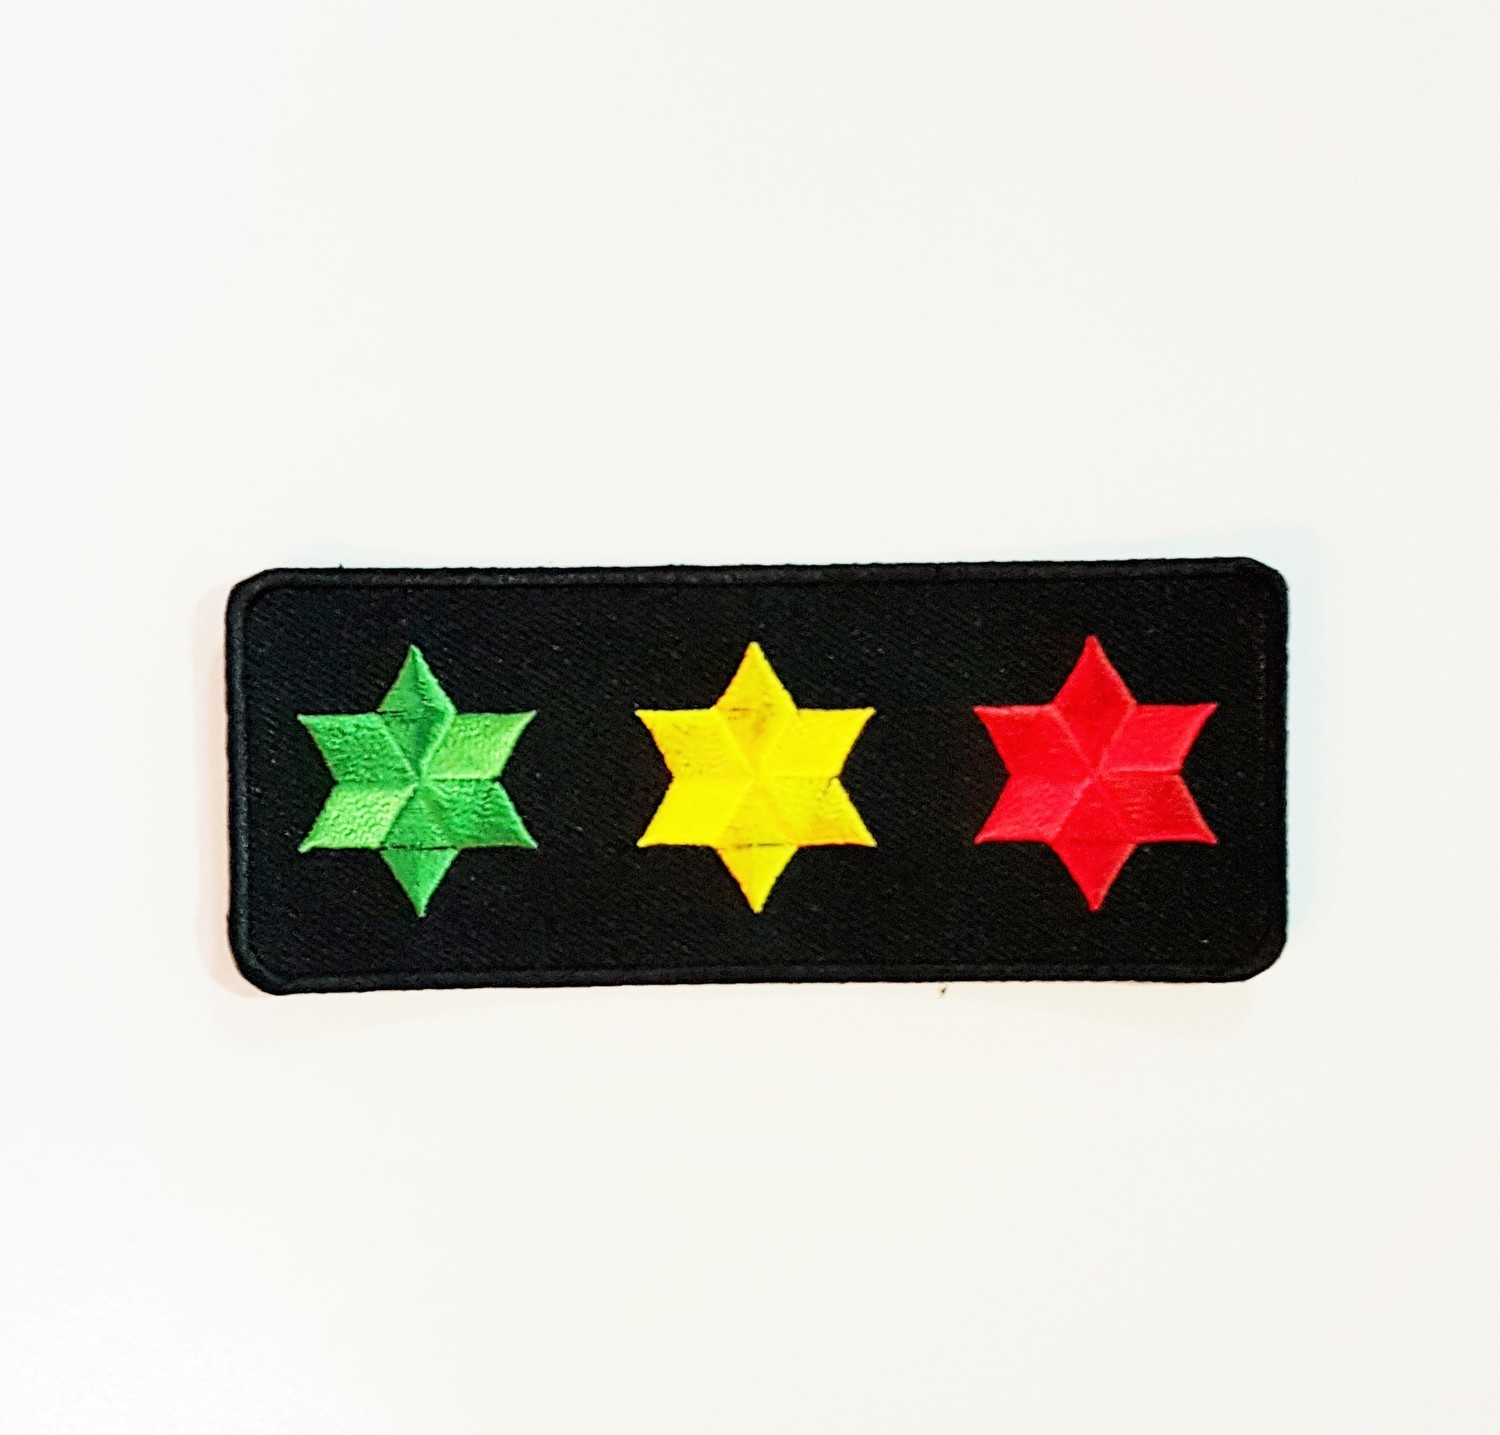 Small 3 Star Green, Yellow, and Red Patch